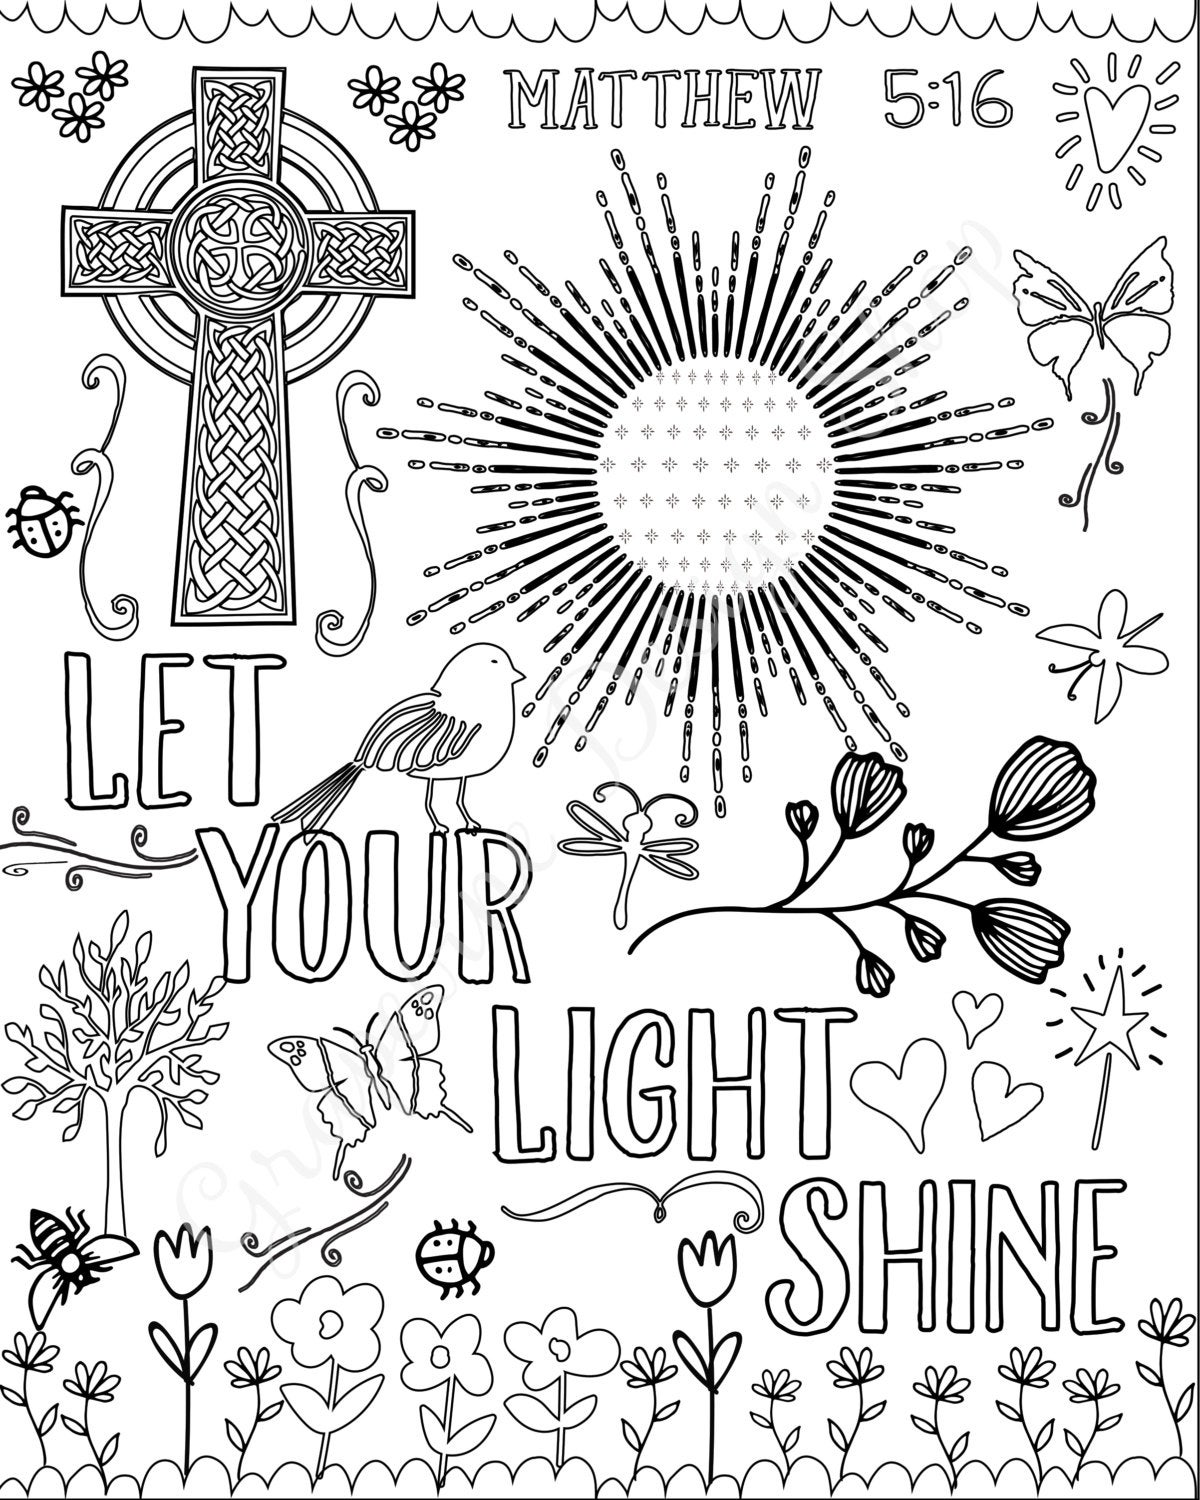 bible verse coloring sheets the joy of the lord sunday doodle bible journaling verse coloring bible sheets